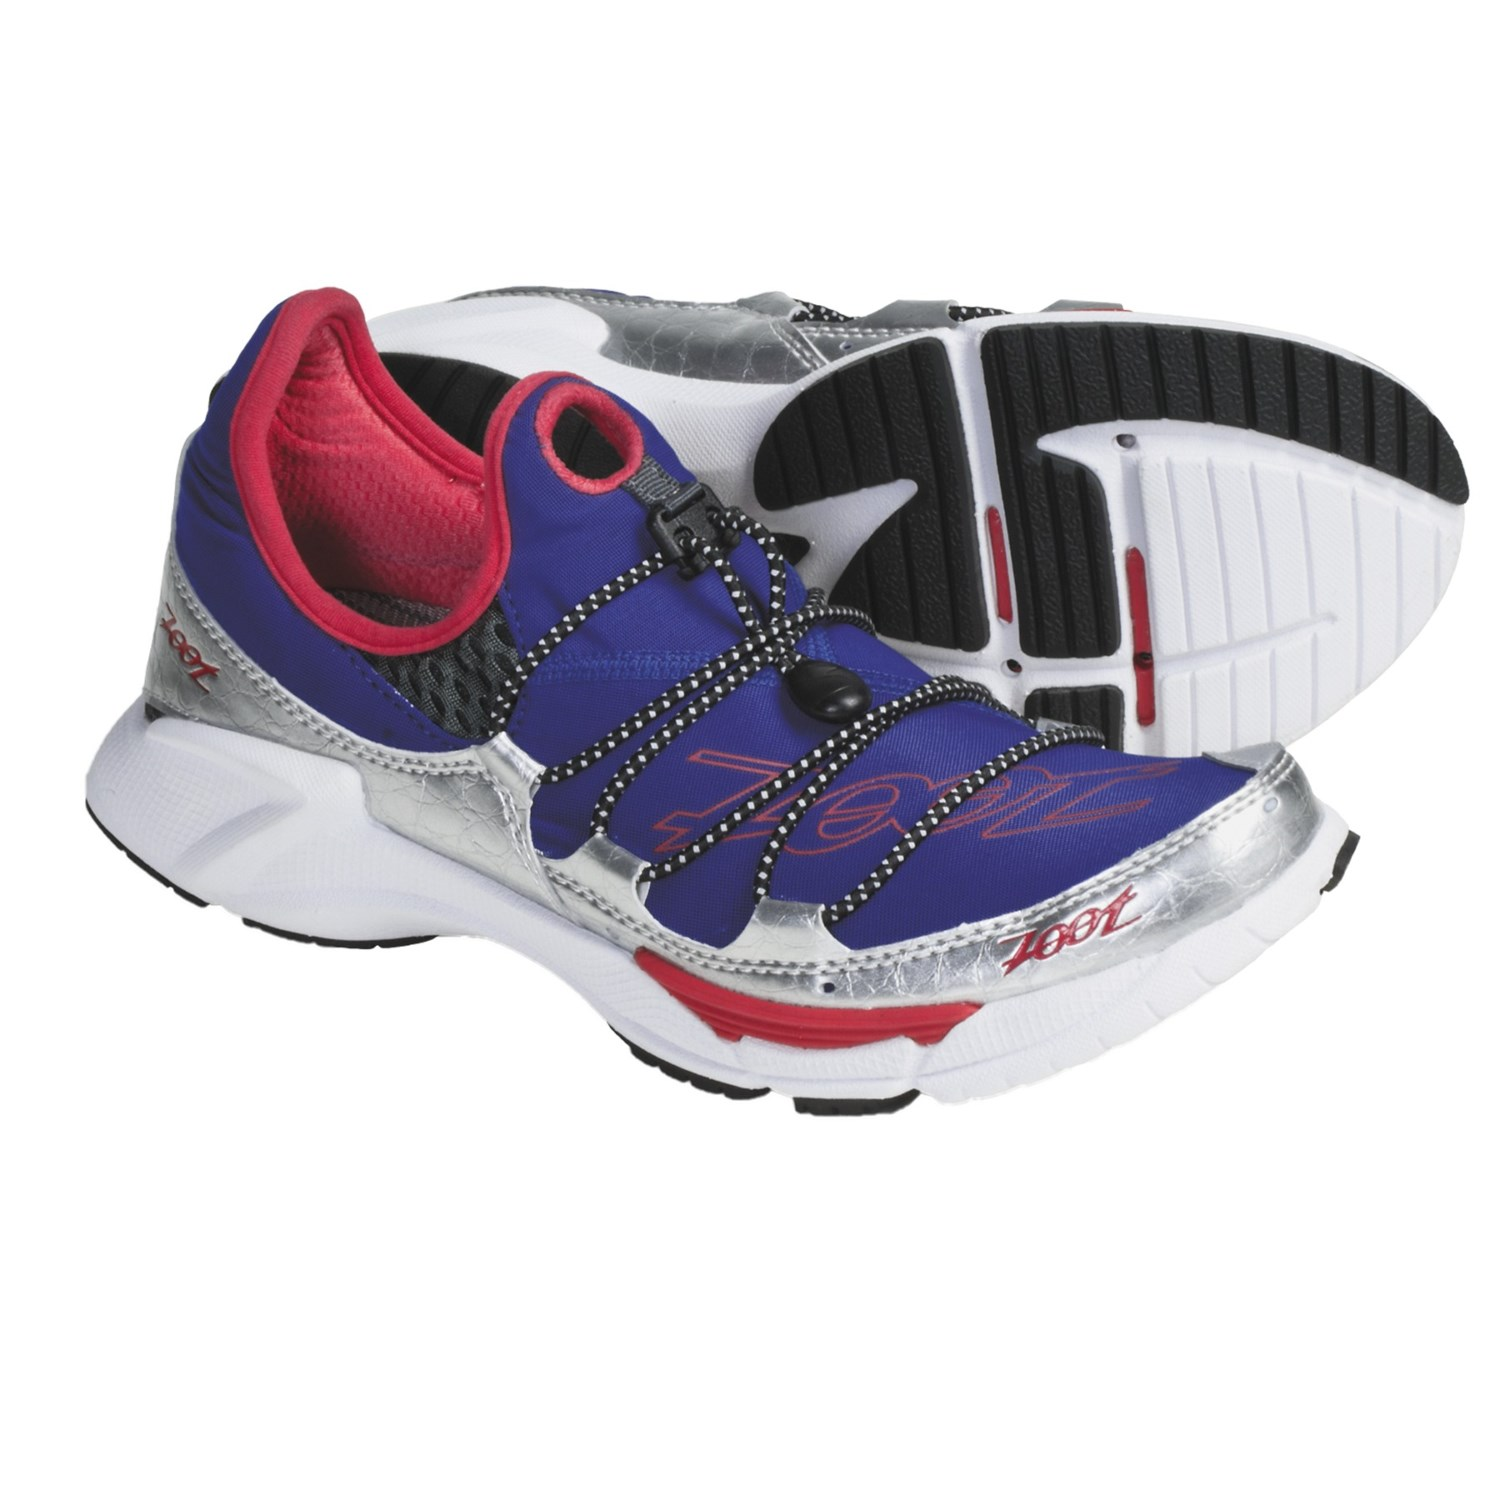 Zoot Sports Ultra Race 3.0 Tri Running Shoes (For Women) in Indigo